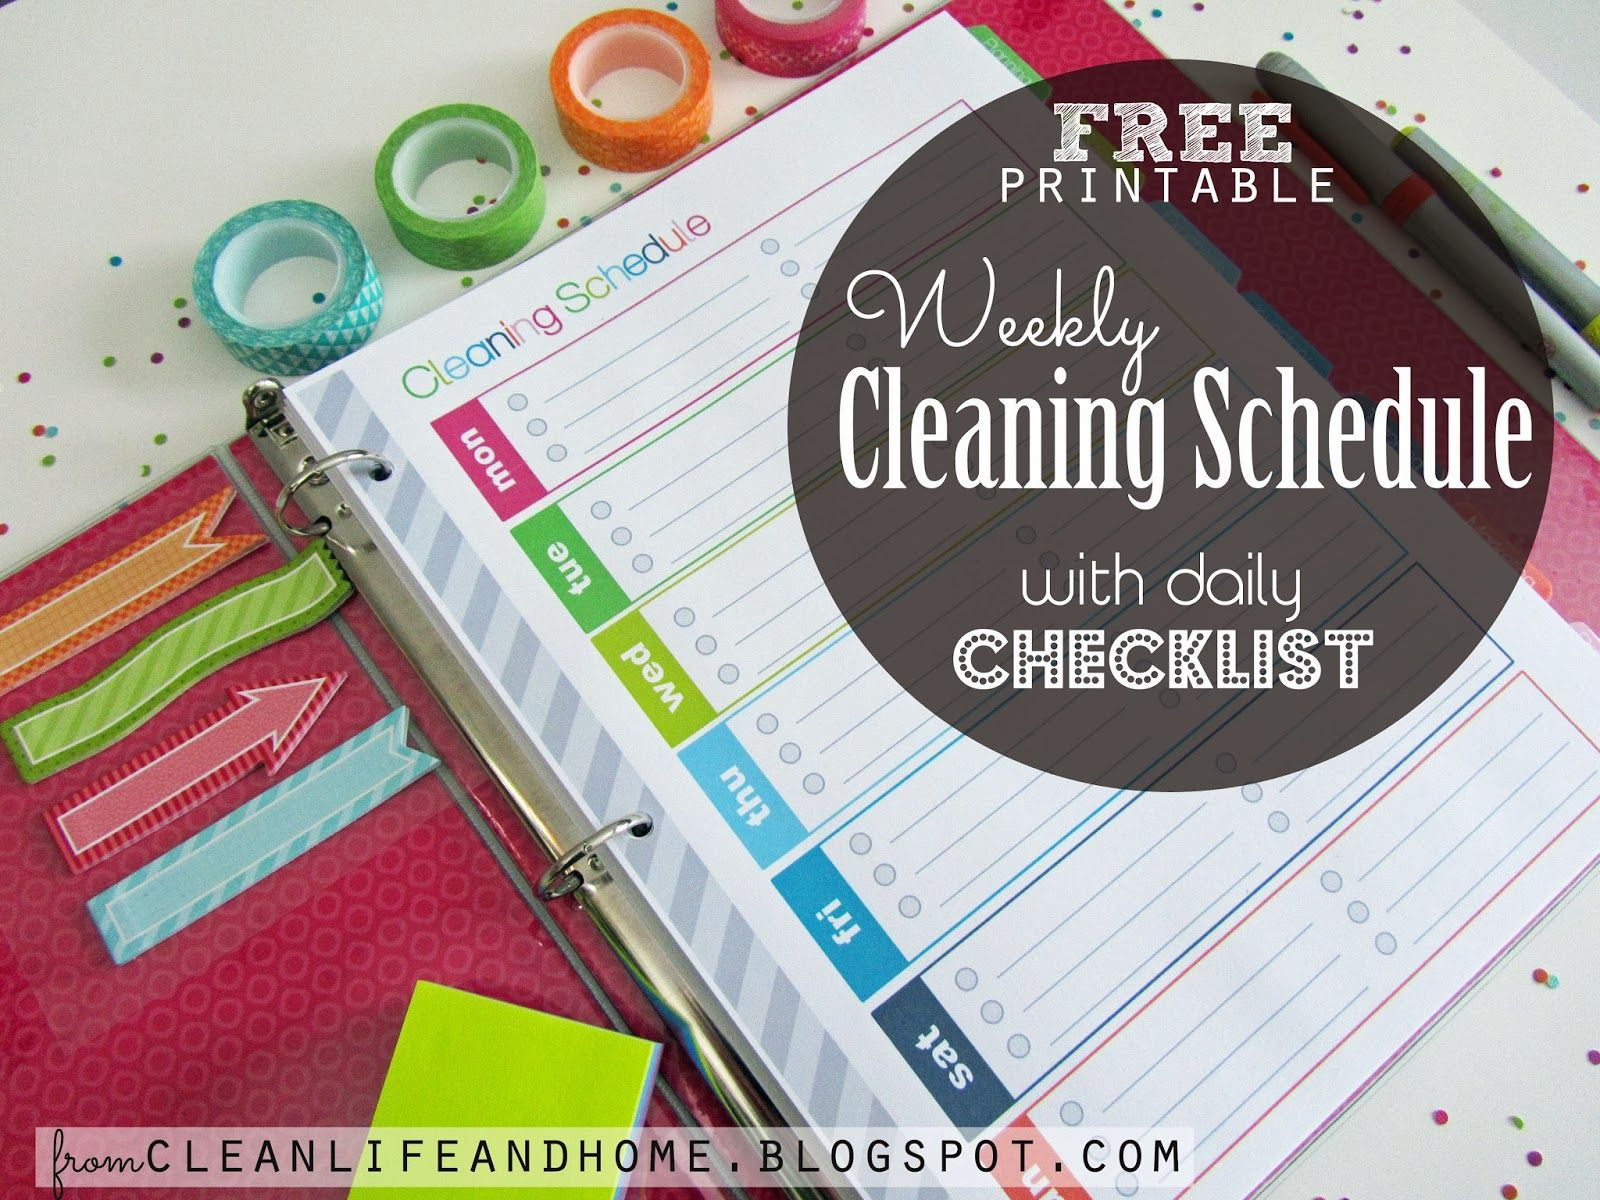 Free Printable Weekly Cleaning Schedule And Daily